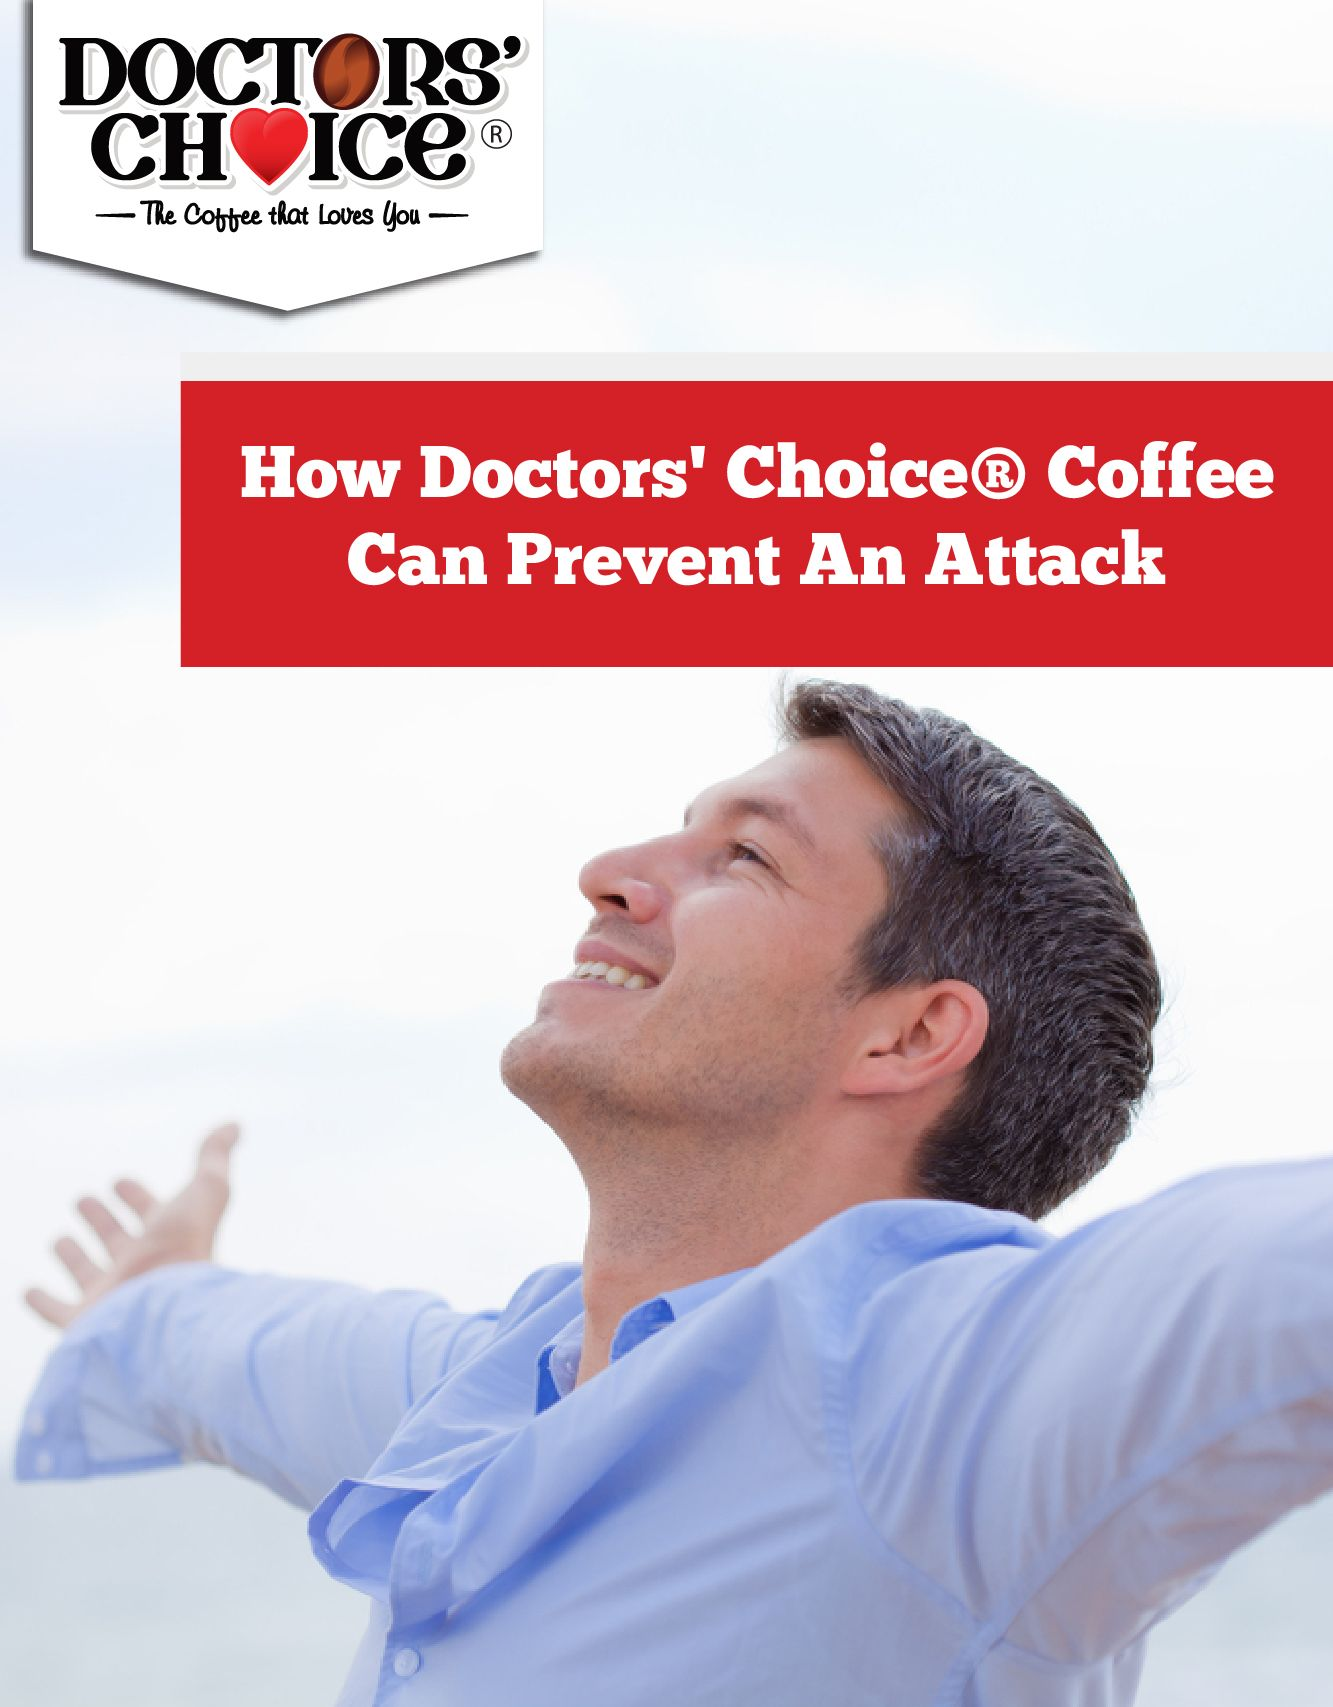 Many people with stomach sensitivity can now enjoy coffee